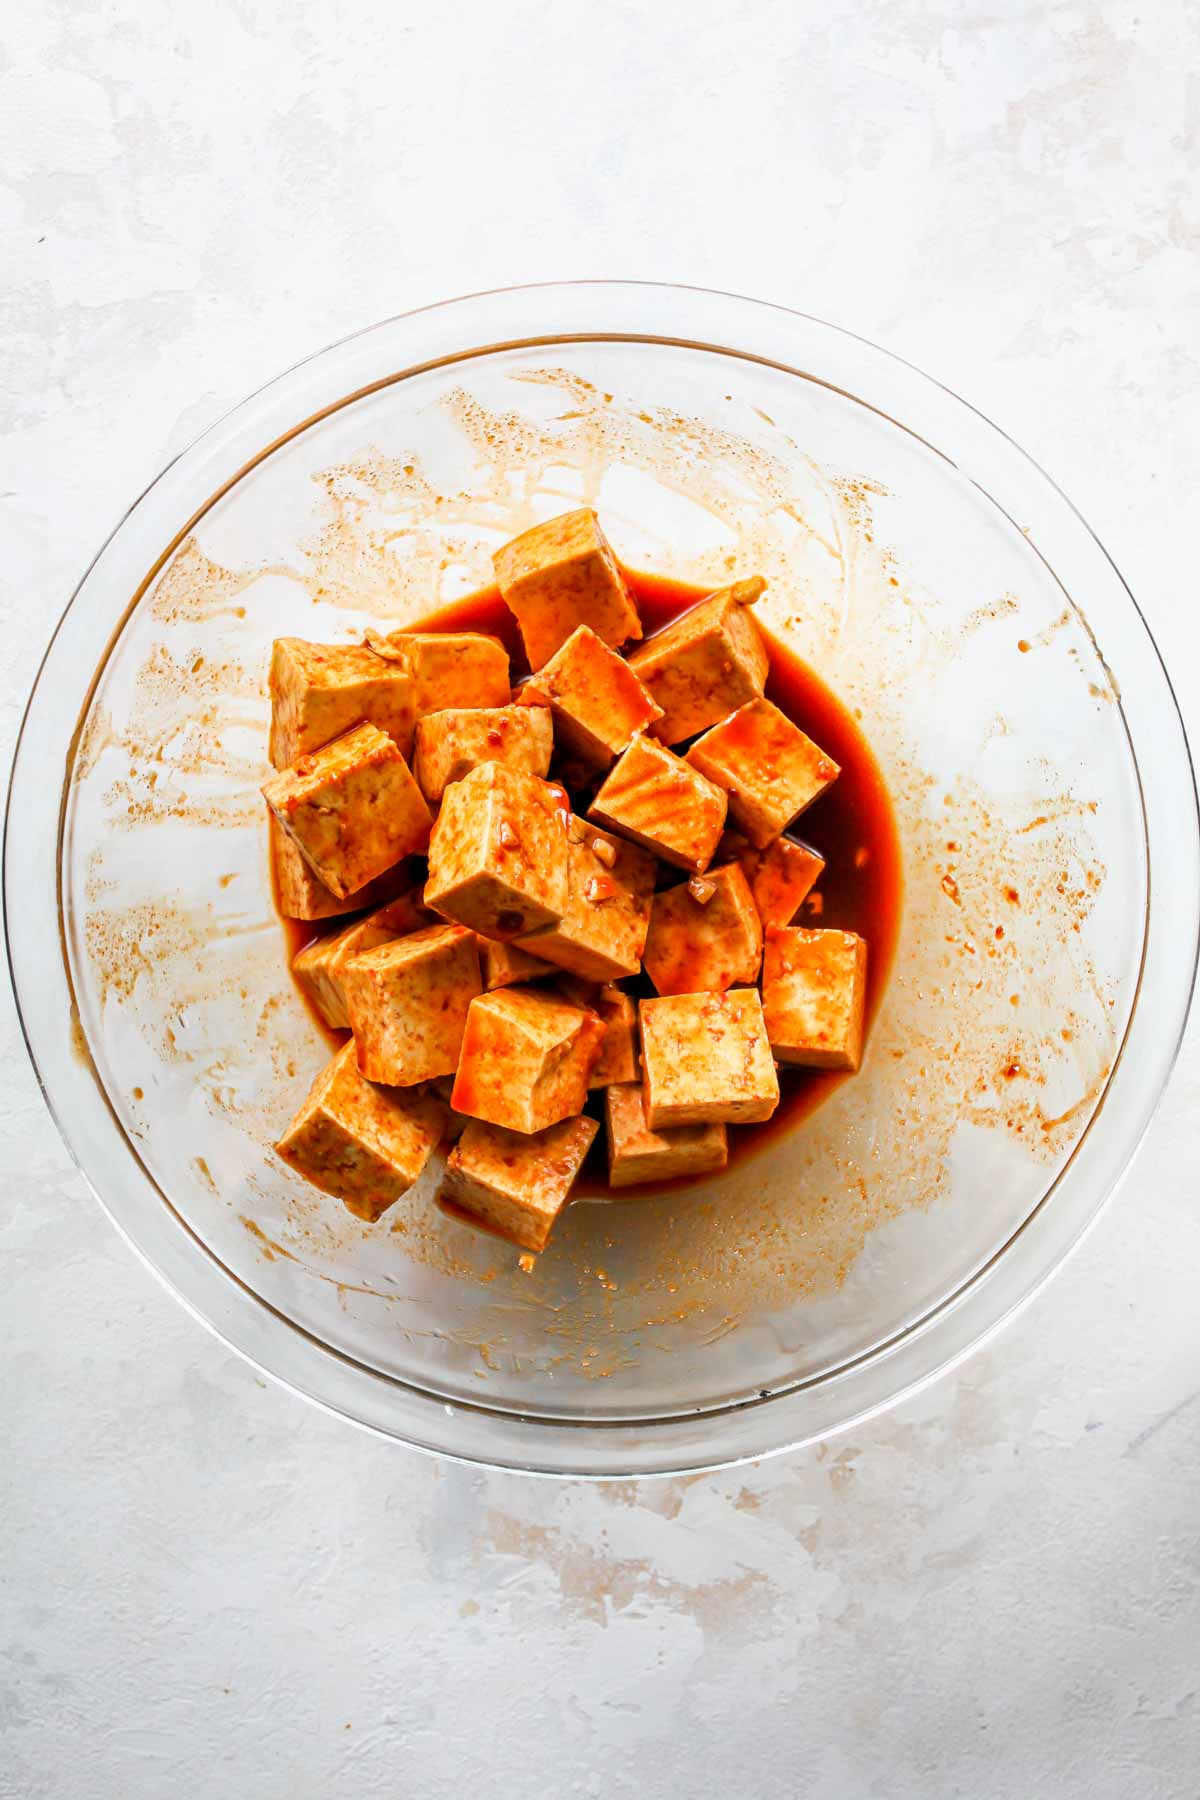 Cubes of tofu marinating in a large mixing bowl